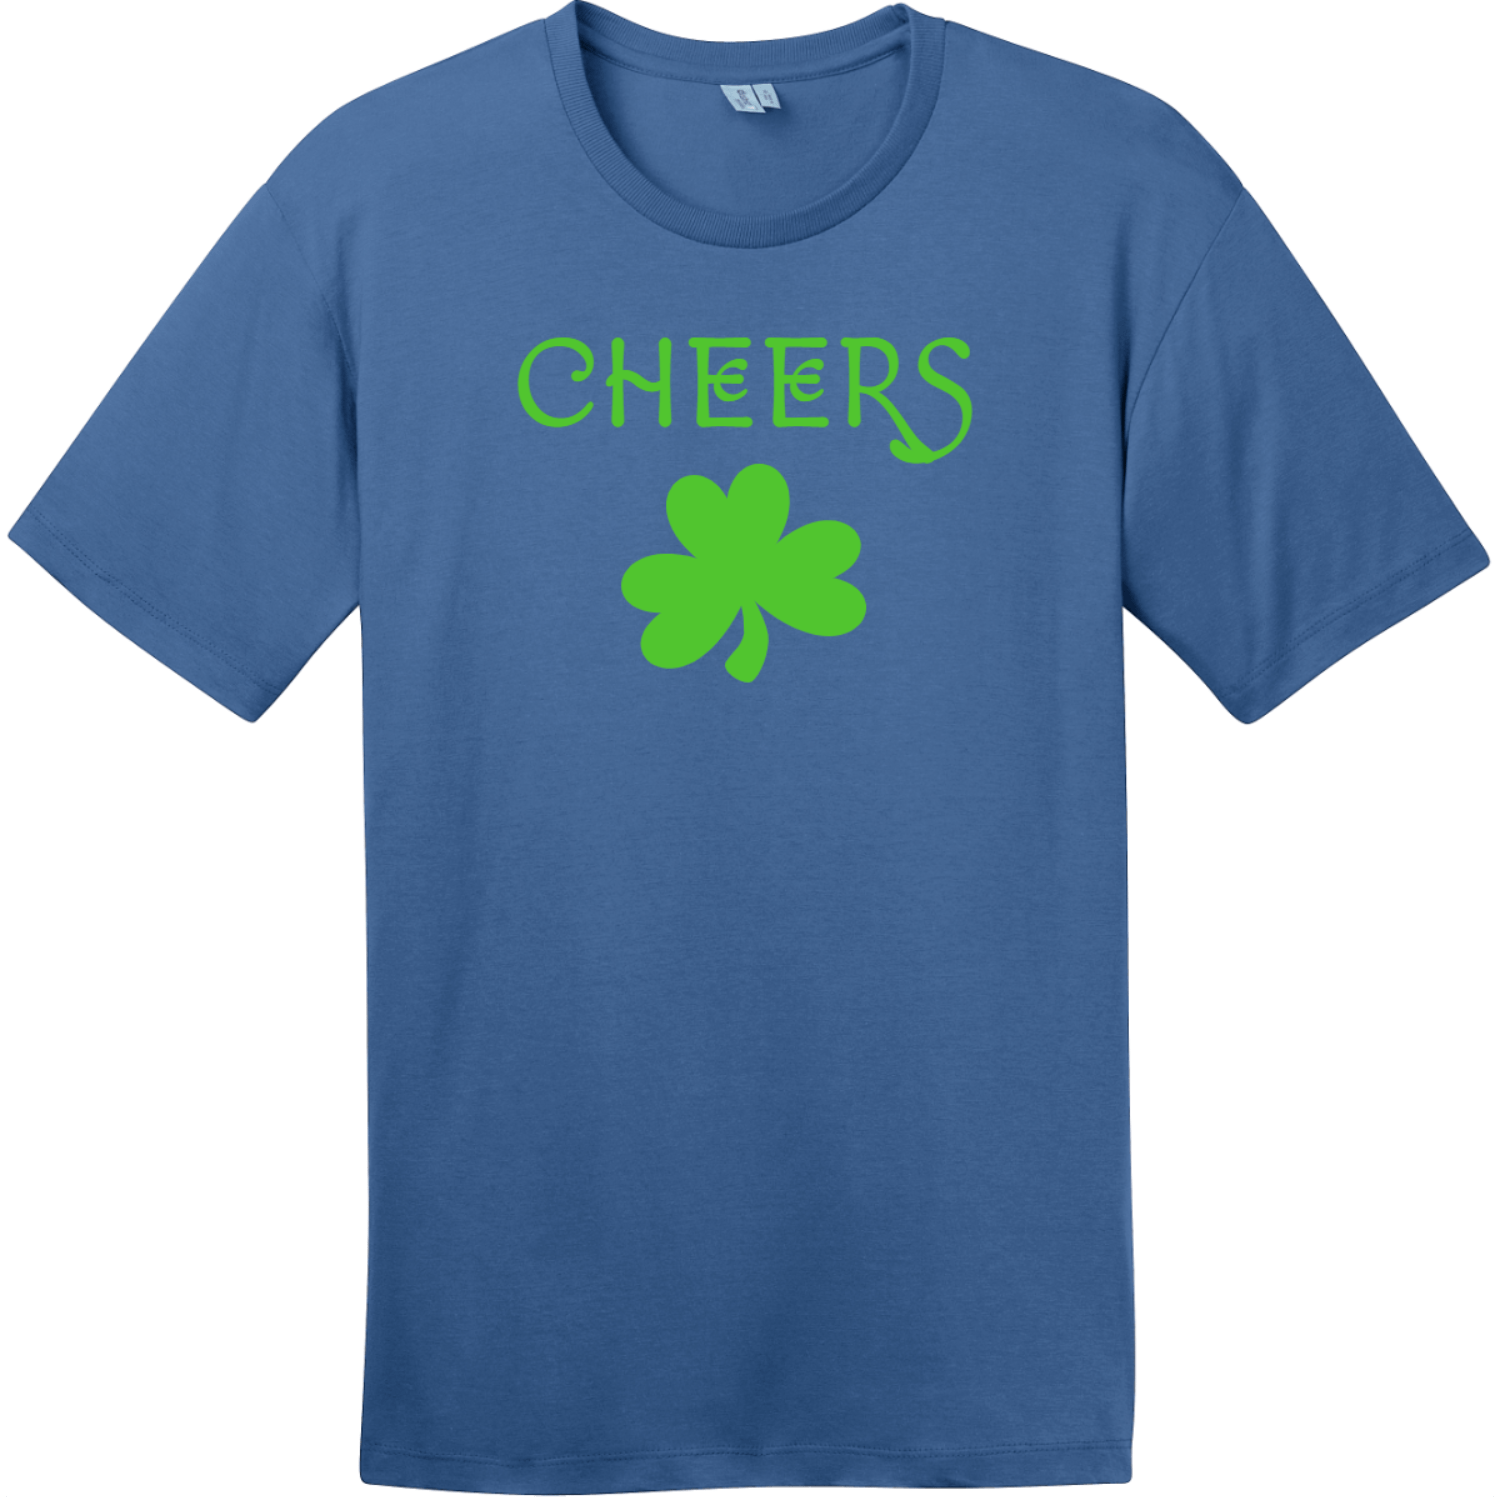 Cheers Shamrock St. Patricks Day T Shirt Maritime Blue District Perfect Weight Tee DT104